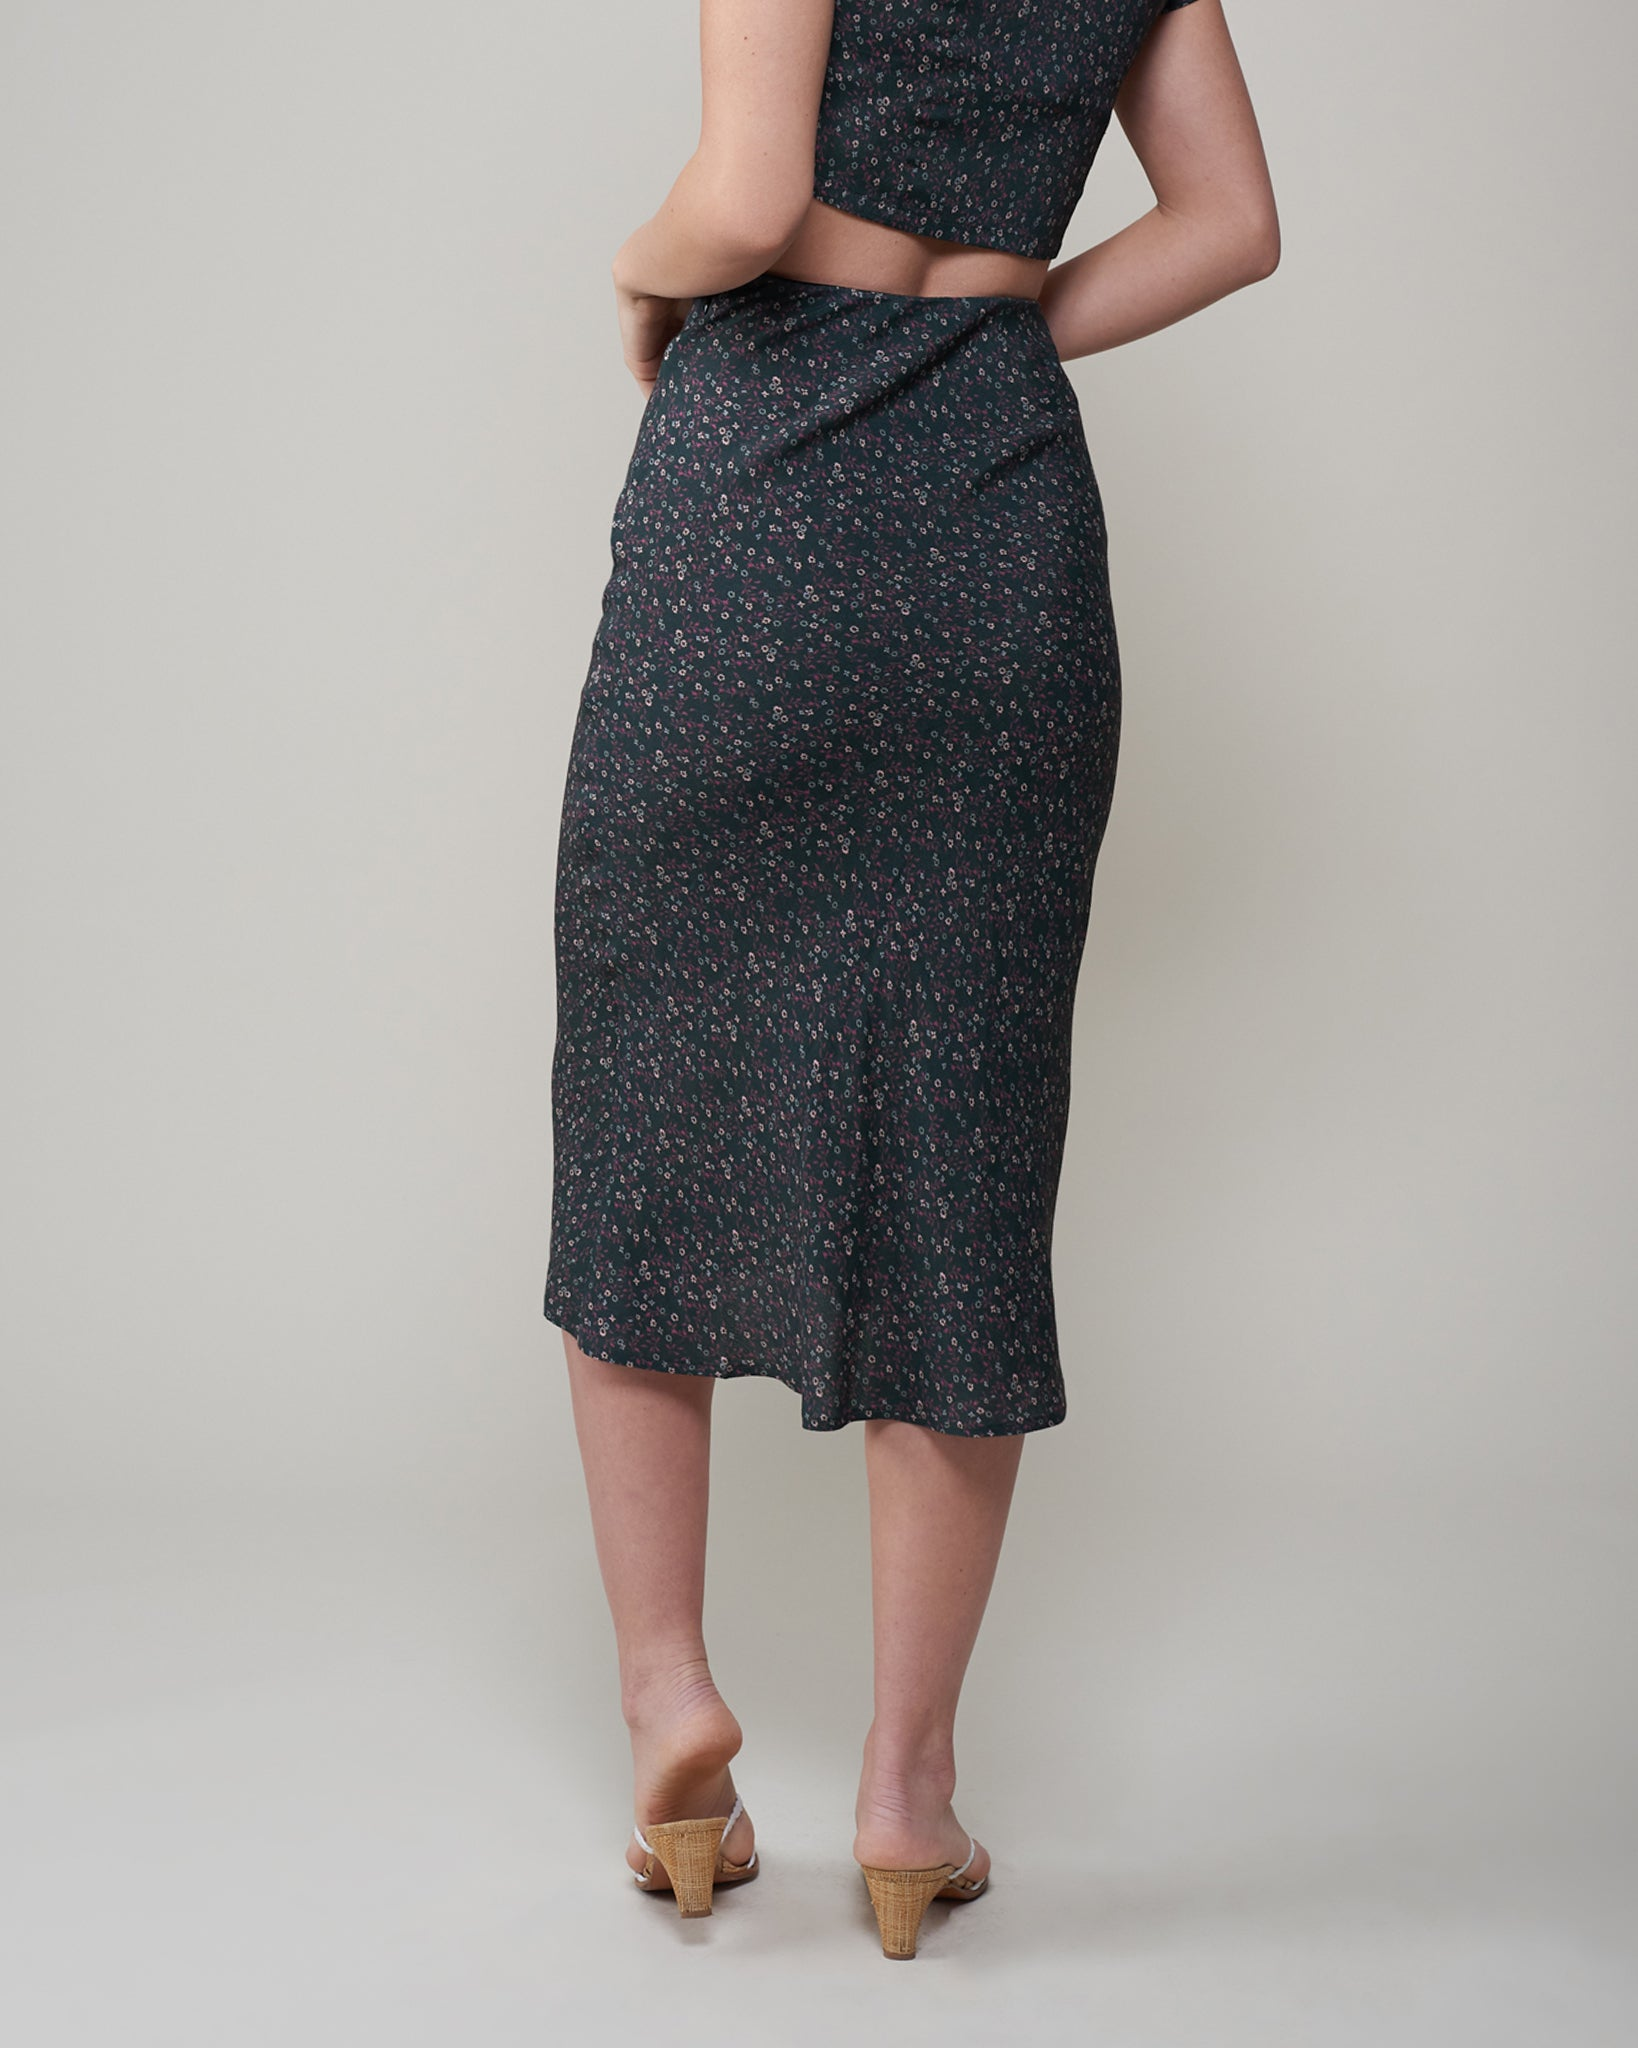 The Simone Skirt